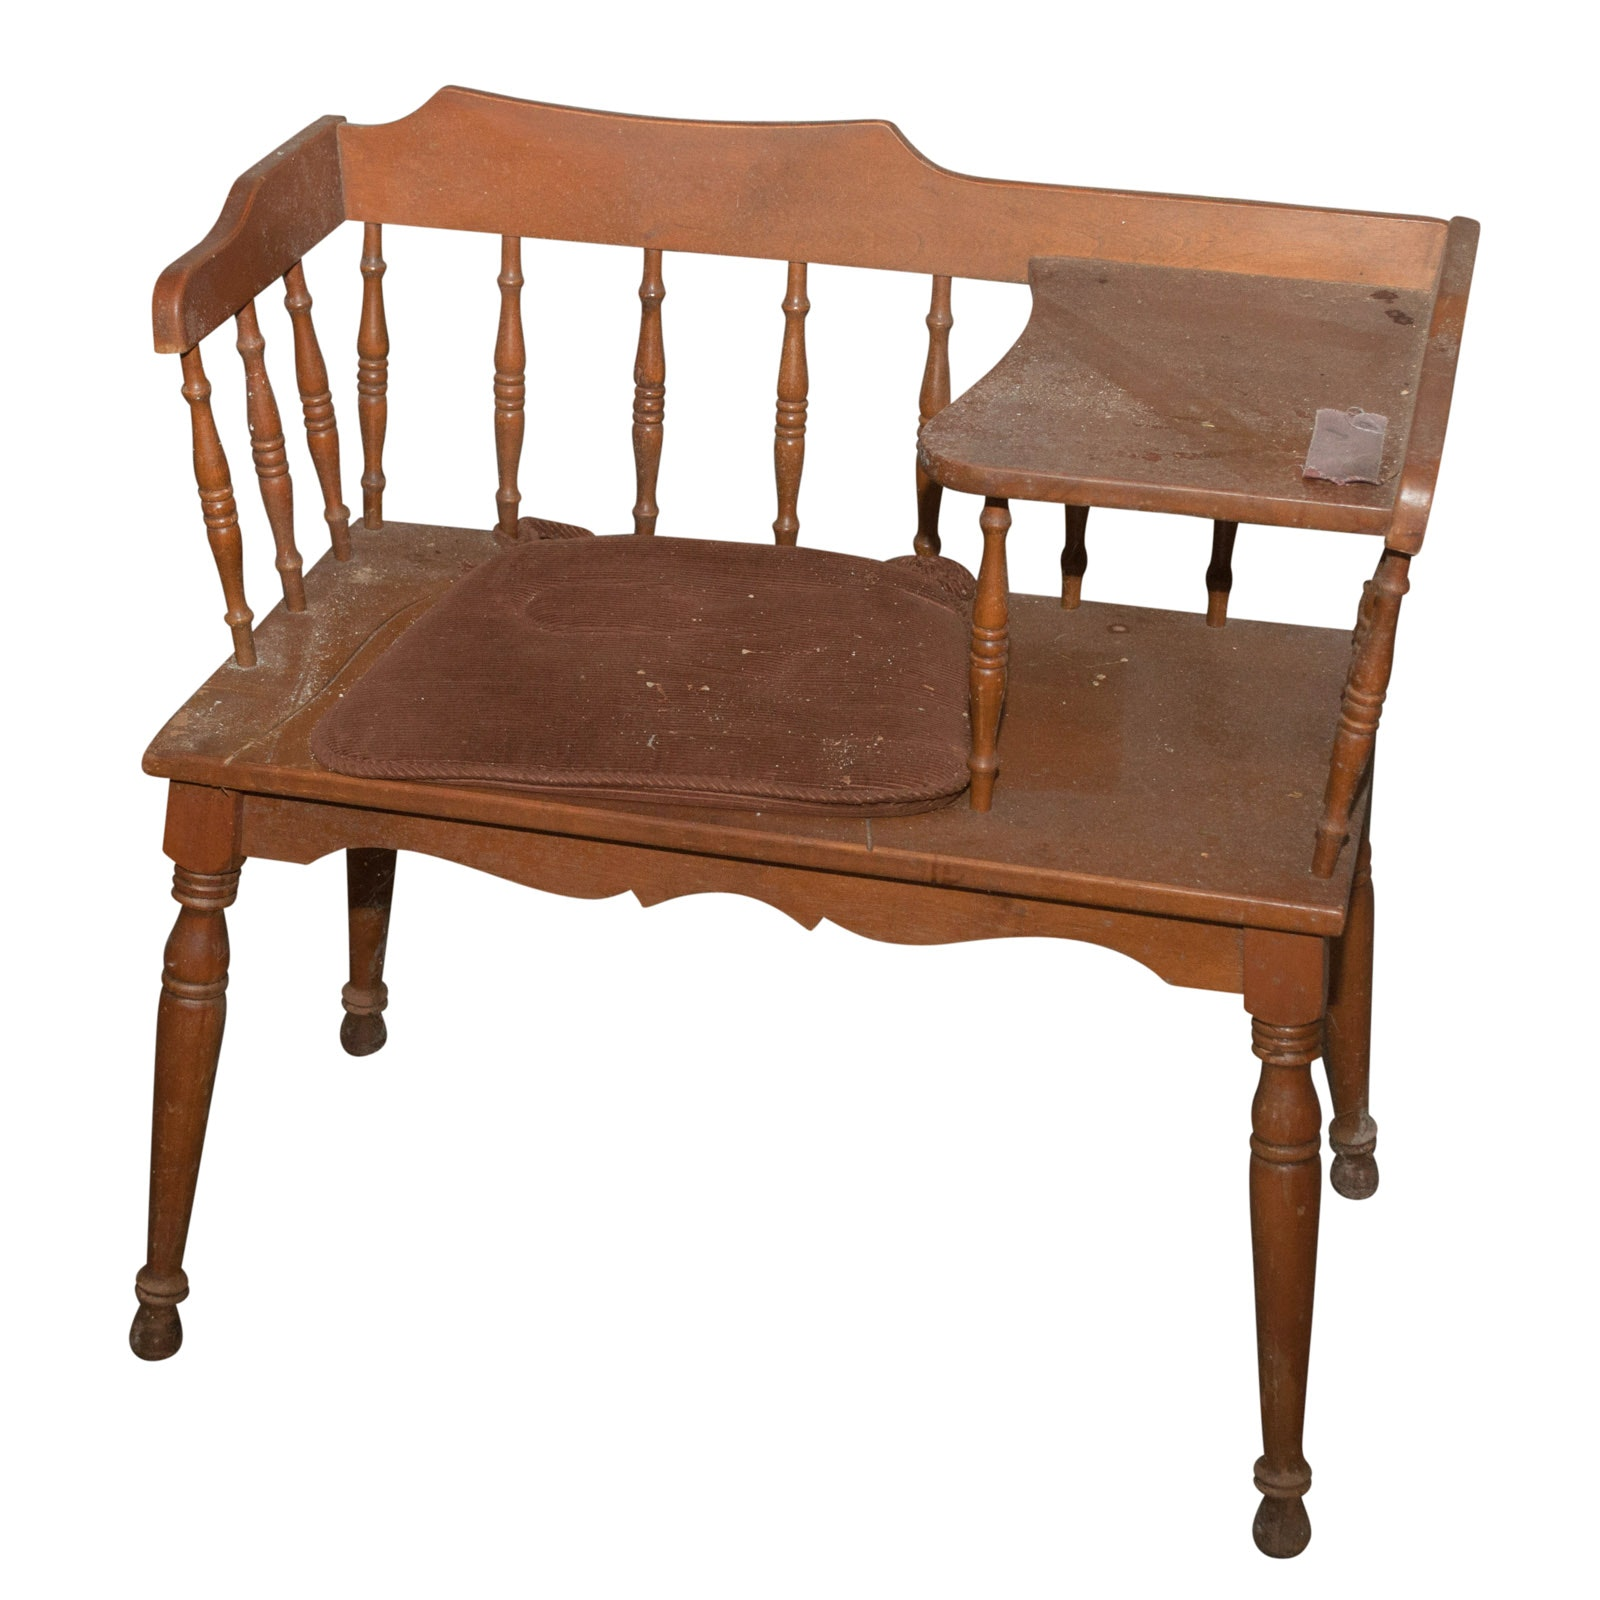 Maple Telephone Bench, Mid-20th Century